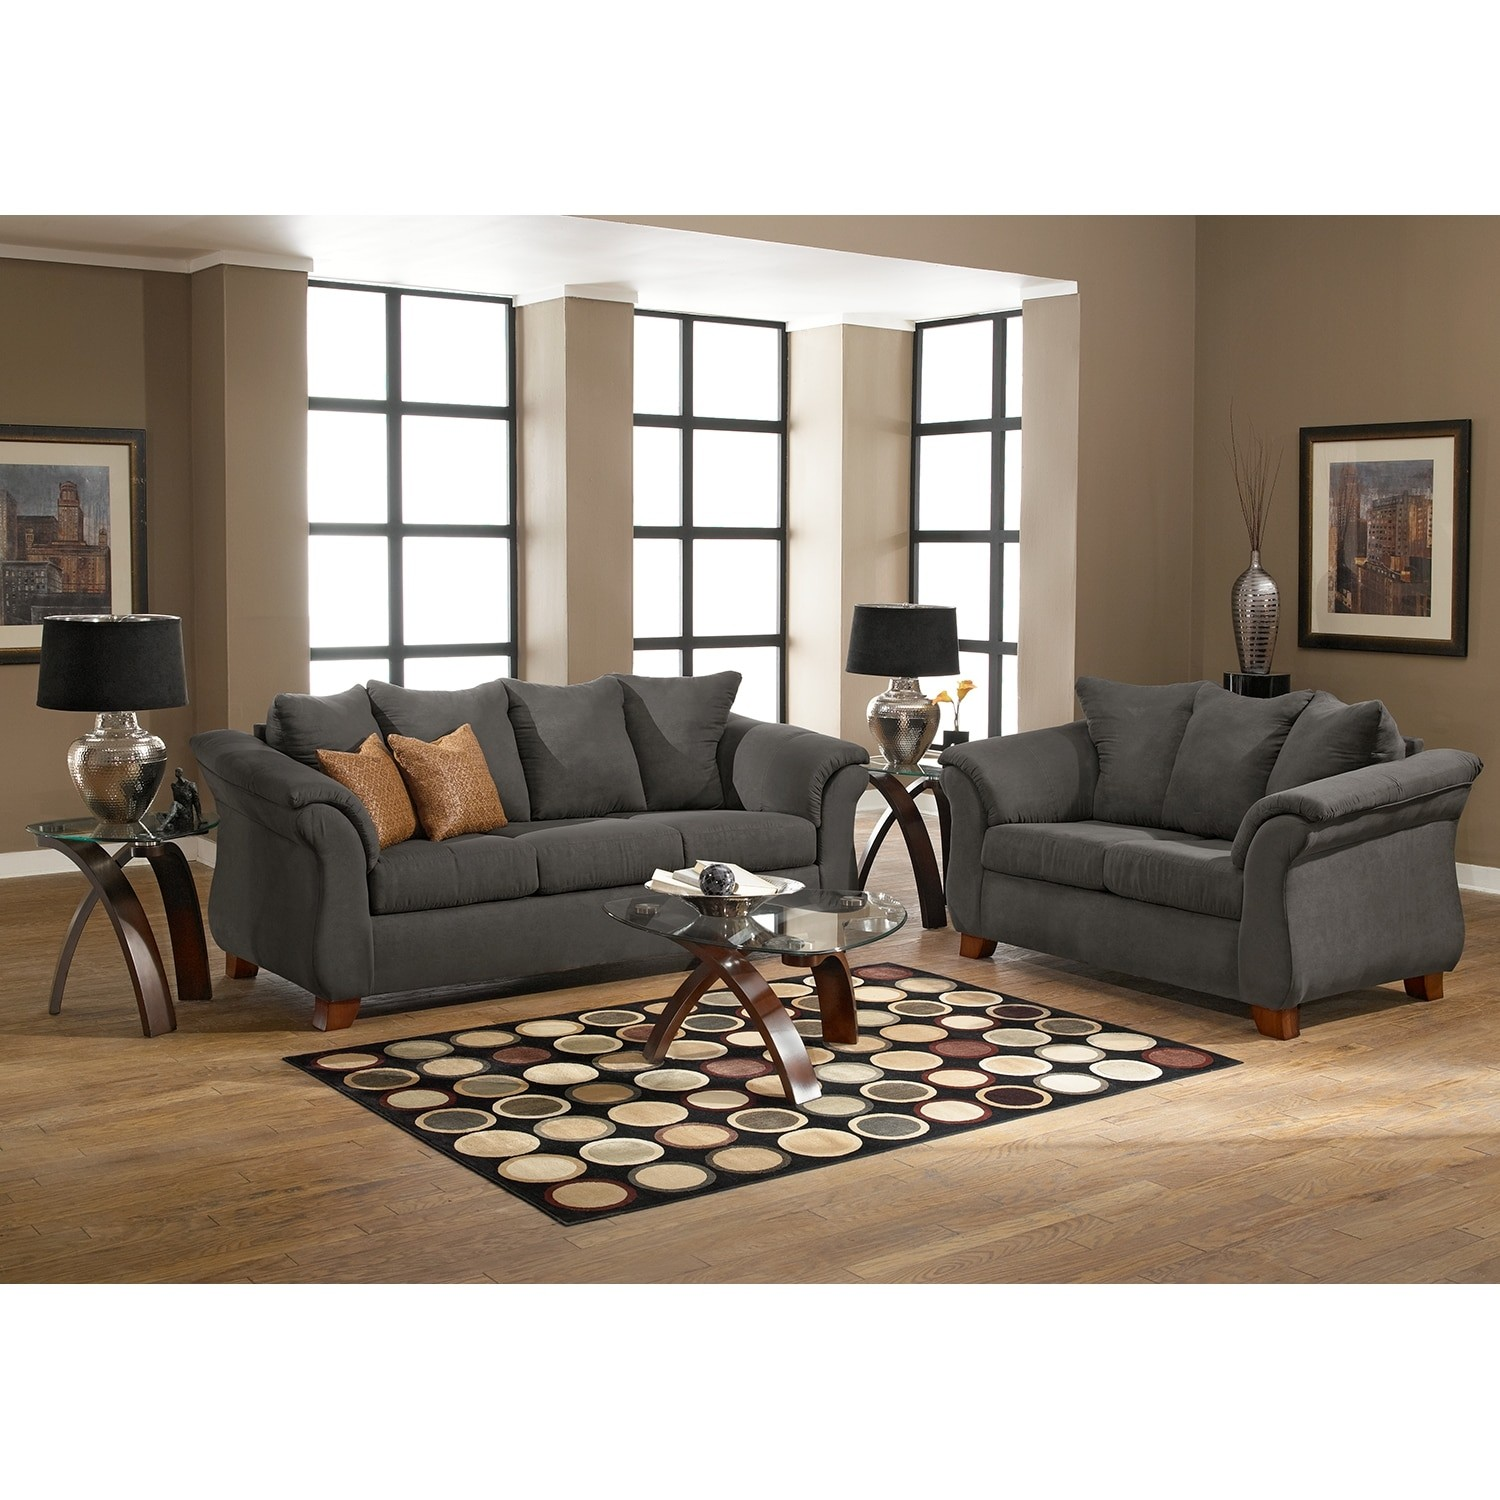 Sofa and Loveseat Sets Finest Adrian sofa and Loveseat Set Graphite Wallpaper